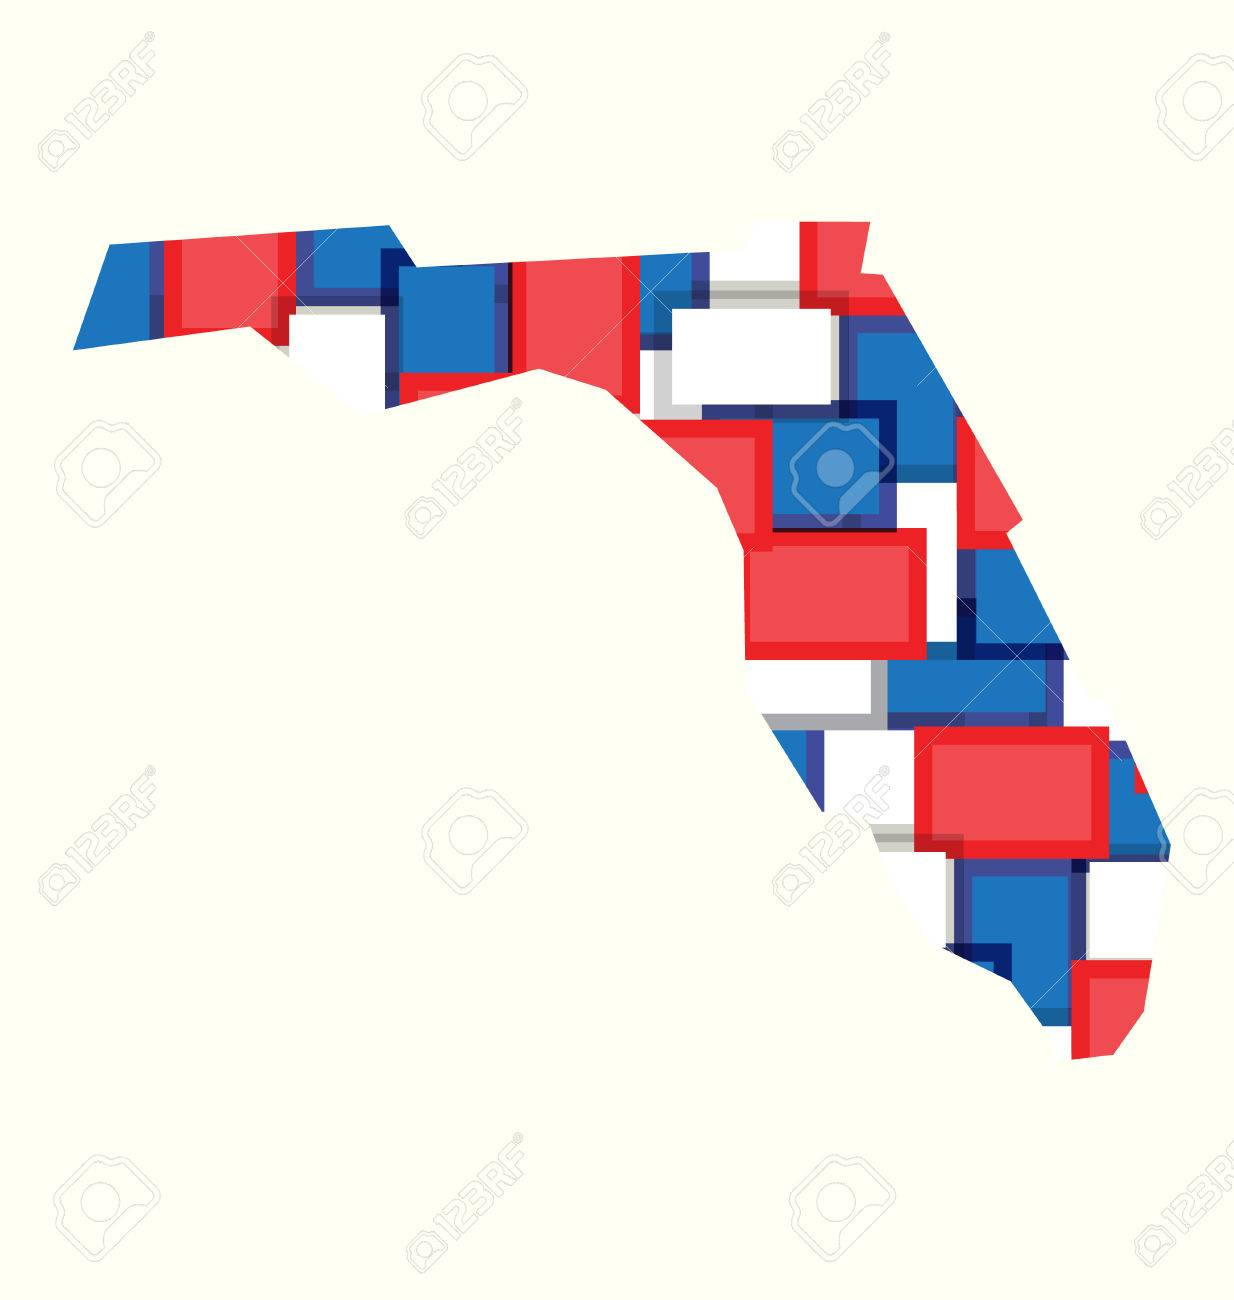 Florida Redwhiteblue Color Squares Map Concept Of Politics - Florida map to color